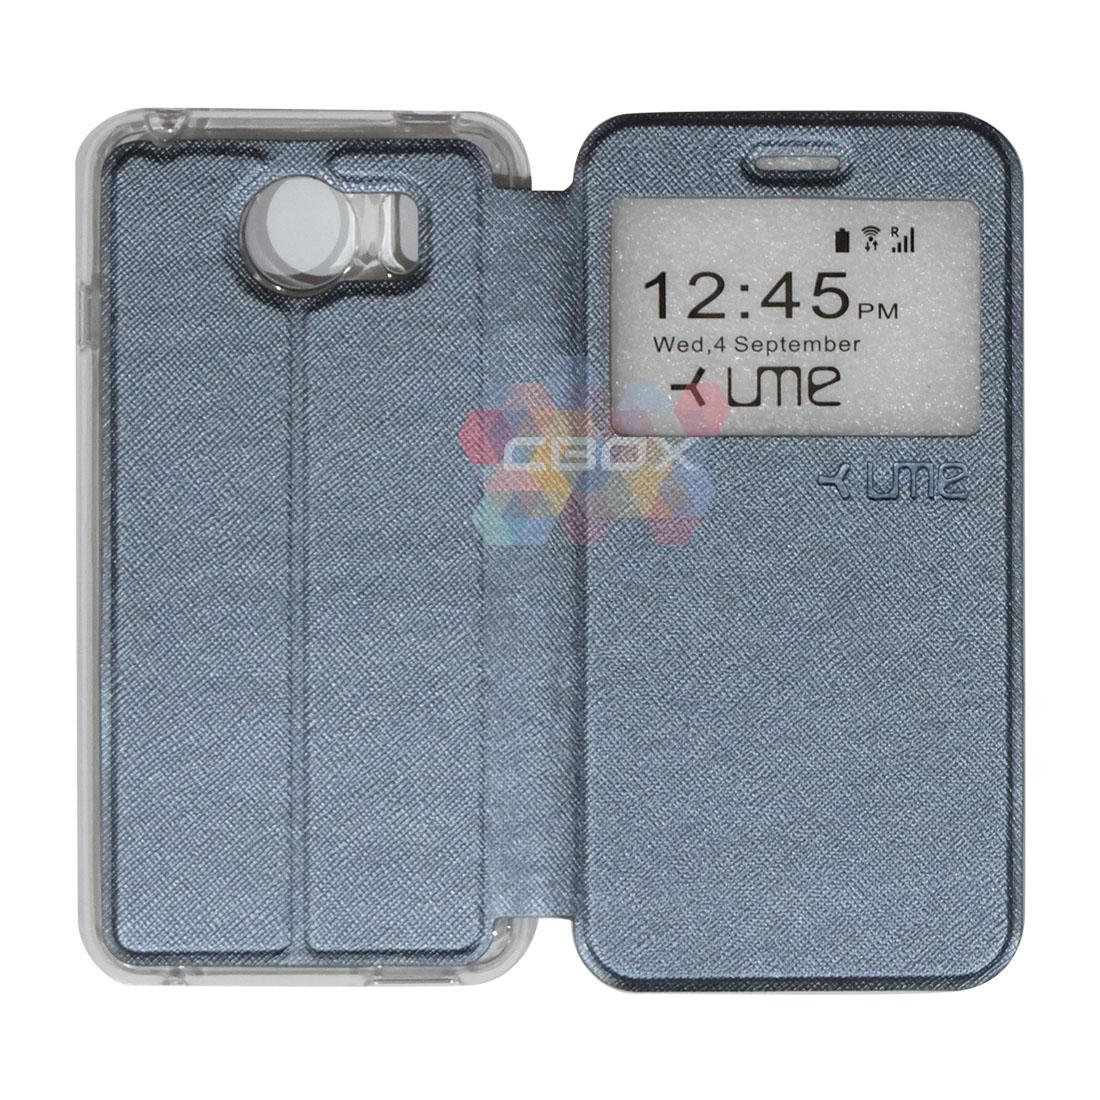 Ume Flipshell Leather Phone Himax M1 Sarung Case / Flipshell Ume Himax M1 / Flipcover Ume Himax M1 / Leather Case Ume Himax M1 / Sarung HP Himax M1 / Flipshell Himax M1 / Flipcover Himax M1 / Casing Himax M1 - Silver